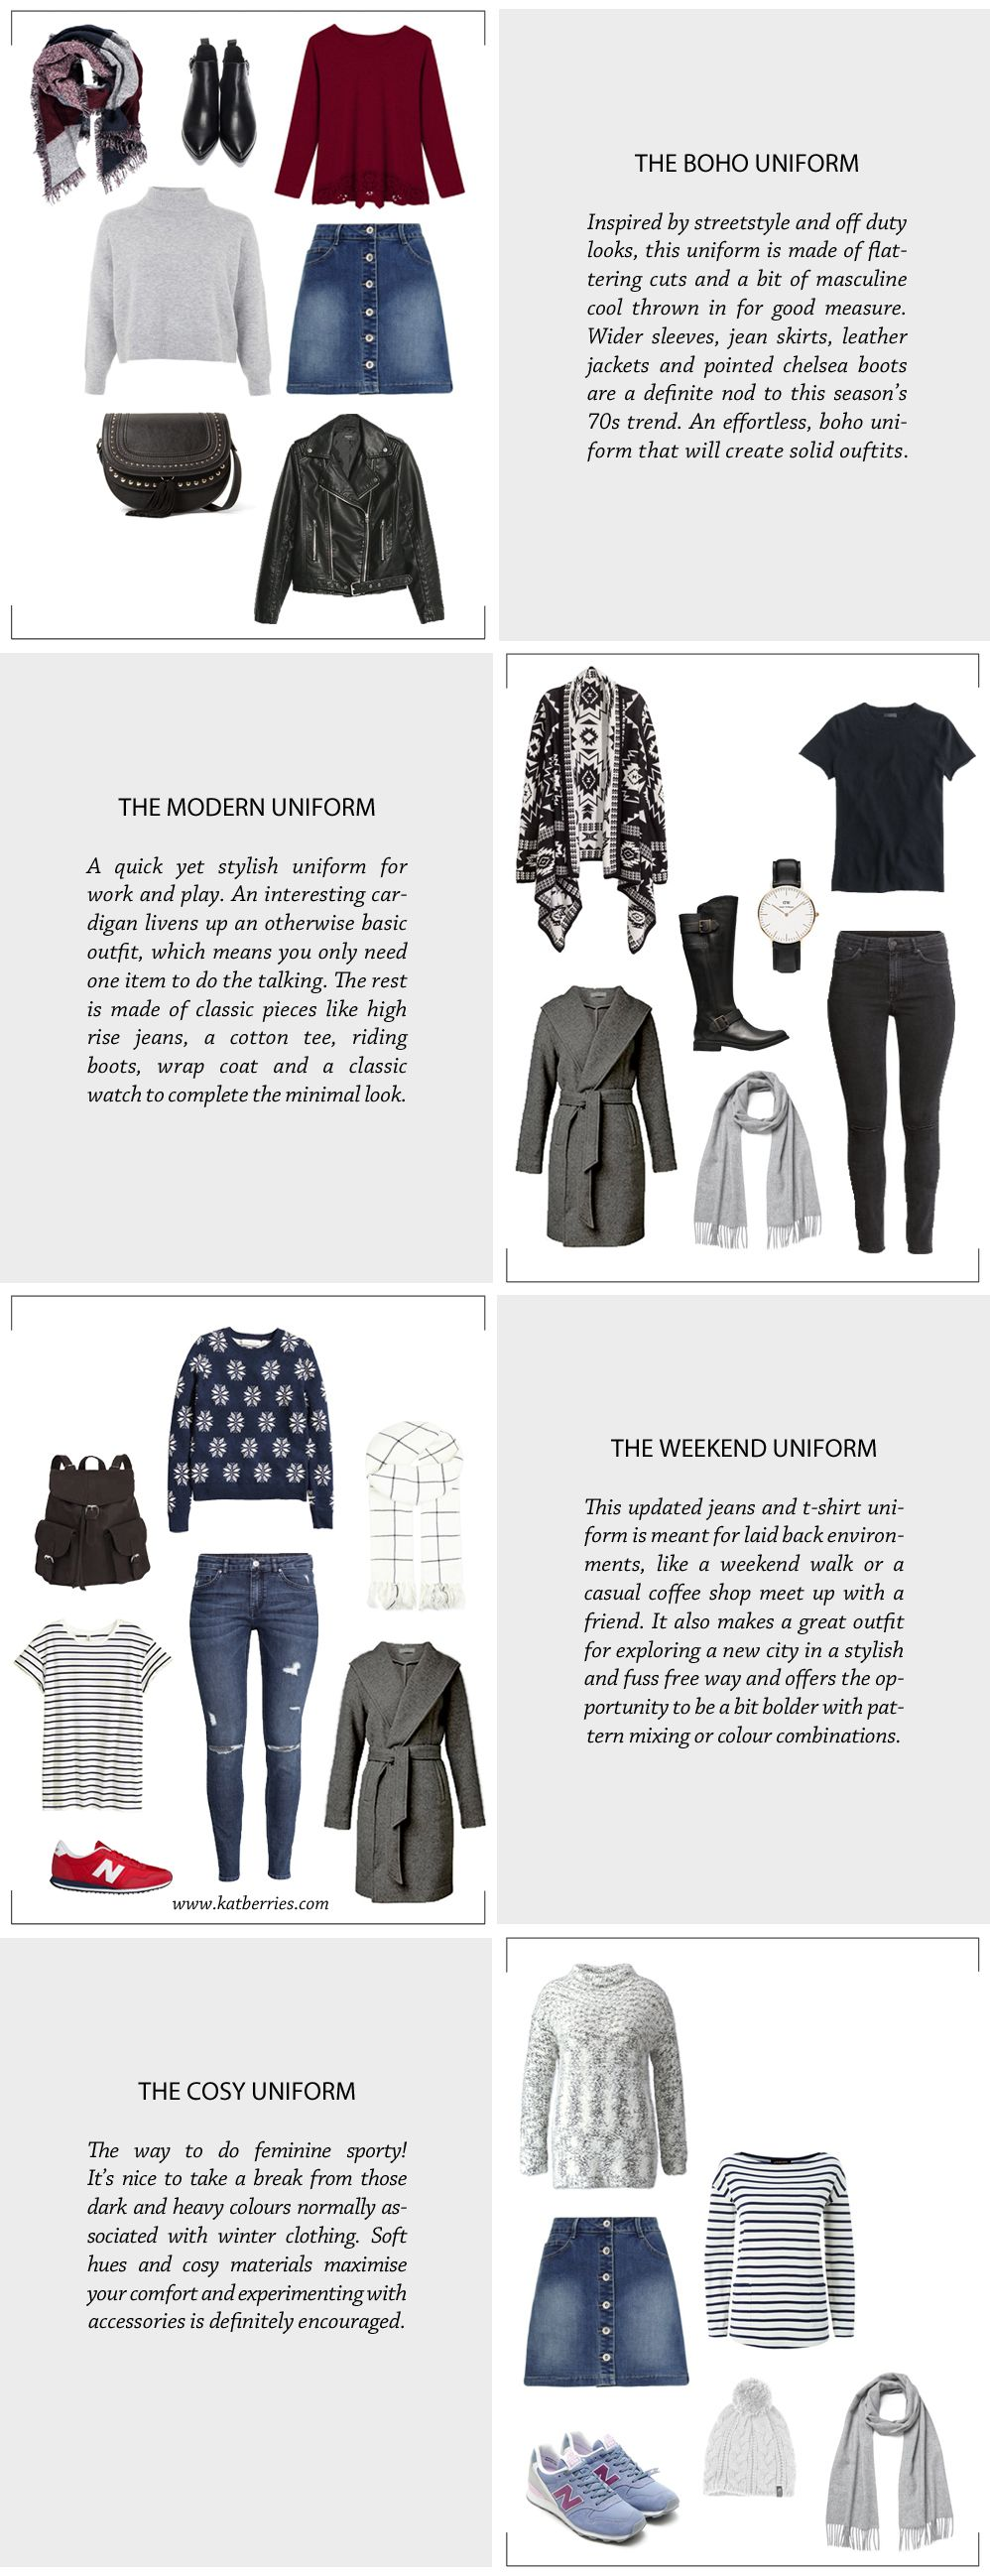 My Winter 2017 Capsule Wardrobe: My Winter Capsule Wardrobe Uniforms For Building Outfits